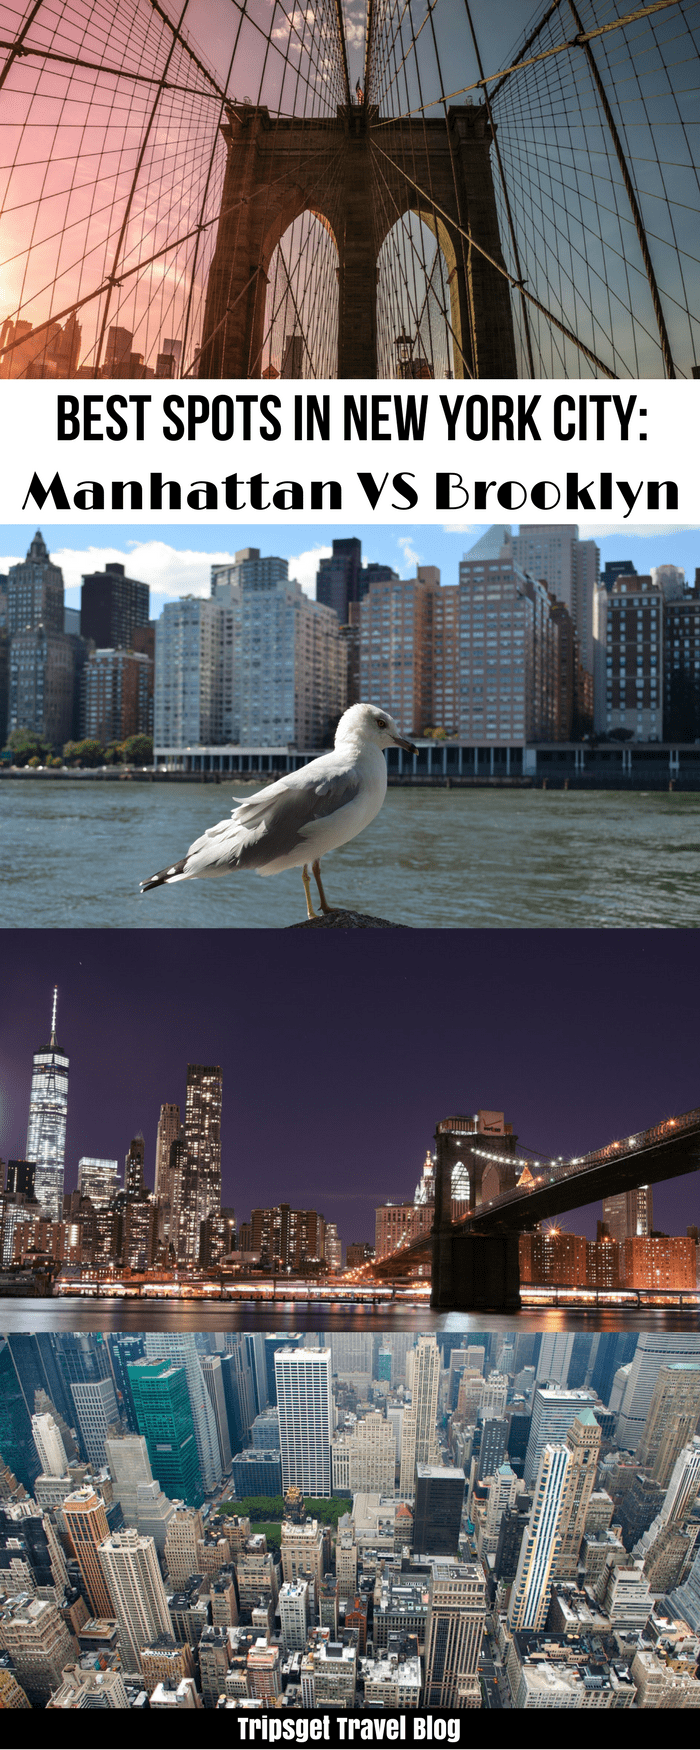 NYC best spots to visit. BEst spots in New York City. Mahattan vs brooklyn. Coney Island, Top of the Rock, Moma, Empire State Building, Highline Park, Williamsburg, DUMBO, Brooklyn Bridge